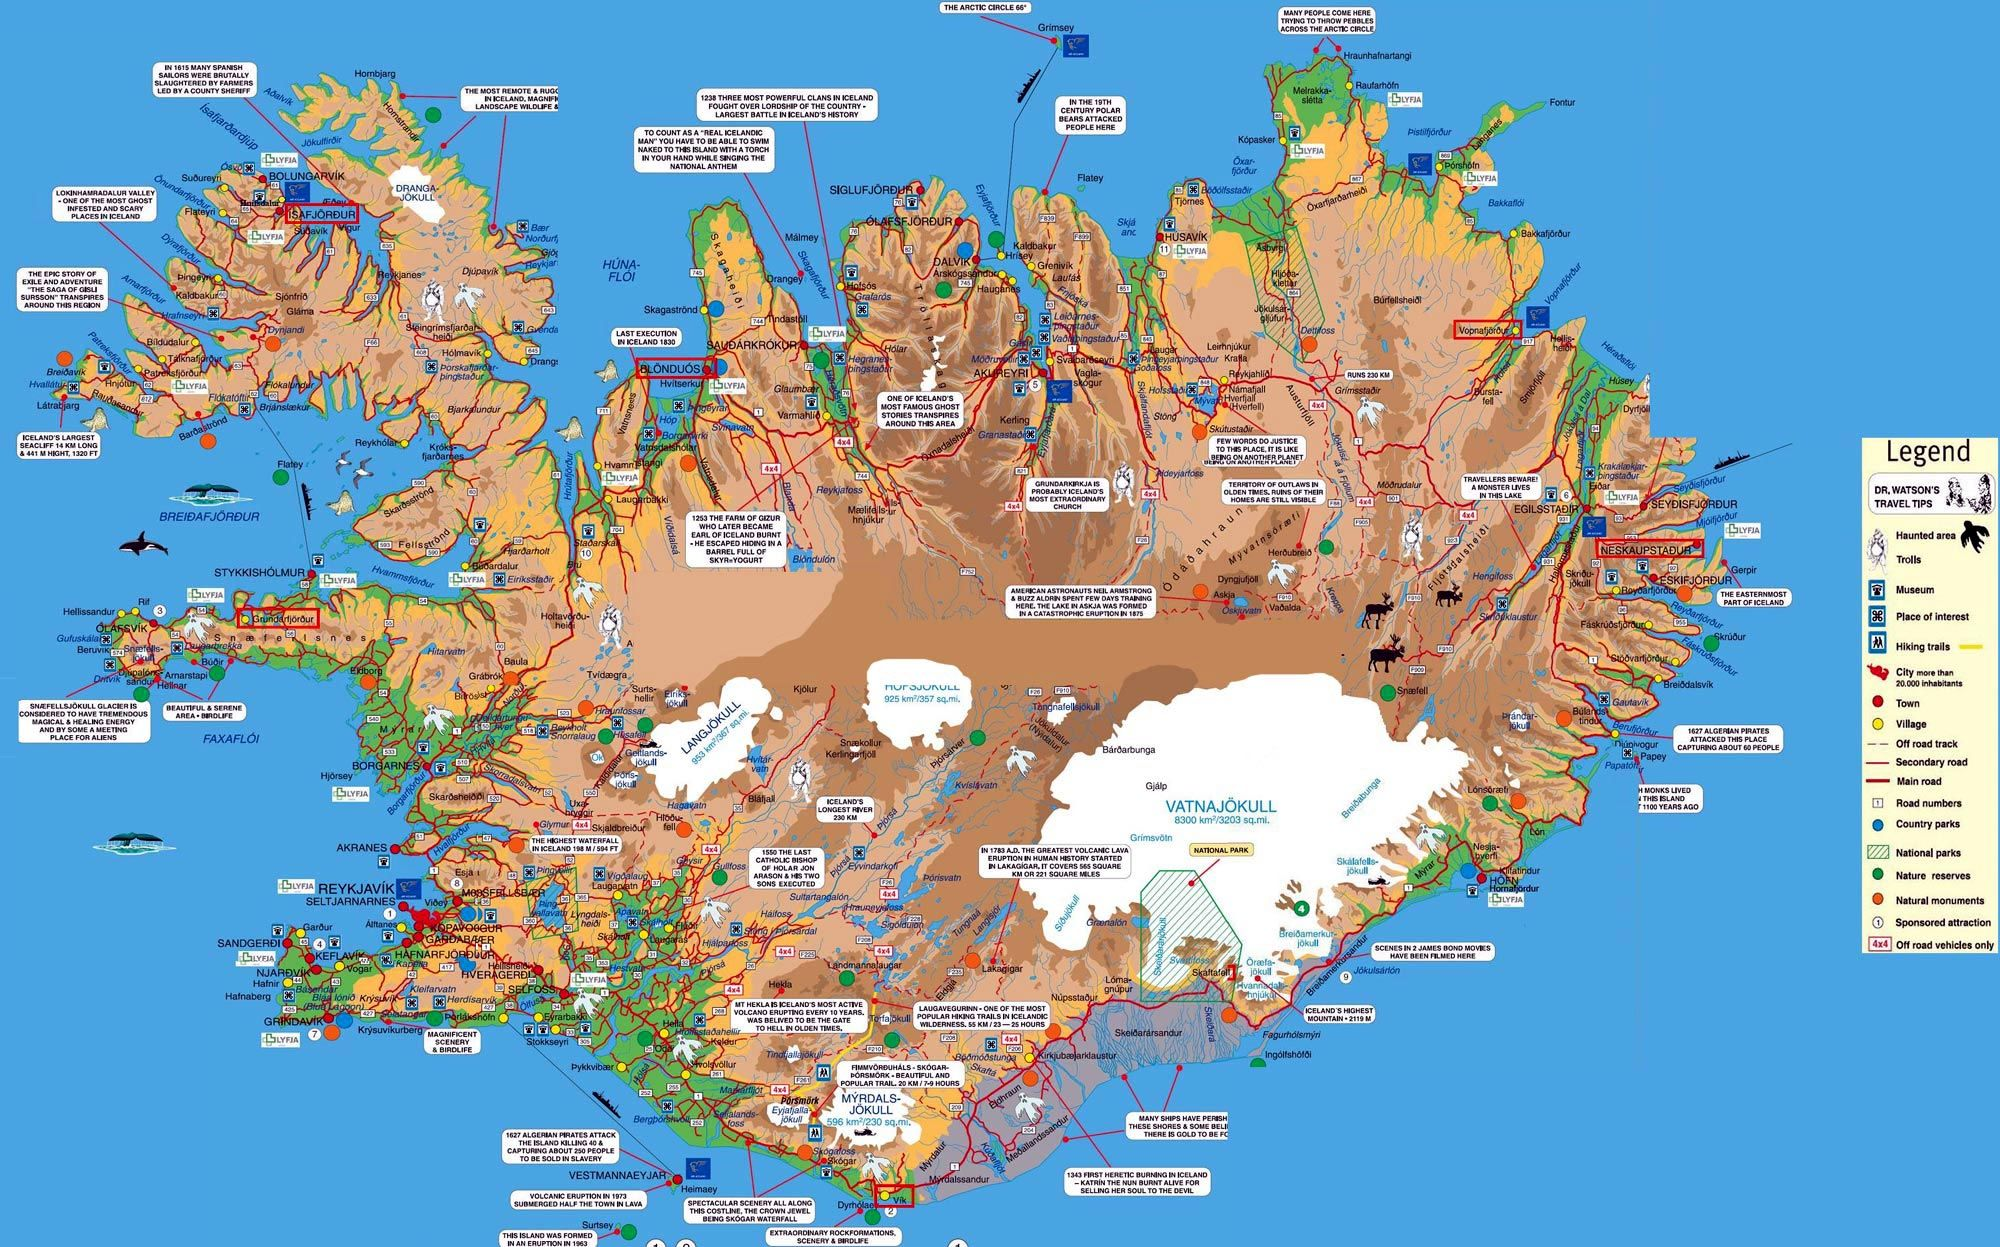 Iceland Iceland Maps Large Detailed Maps Of Iceland For Print And Download Iceland Tourist Iceland Map Tourist Map